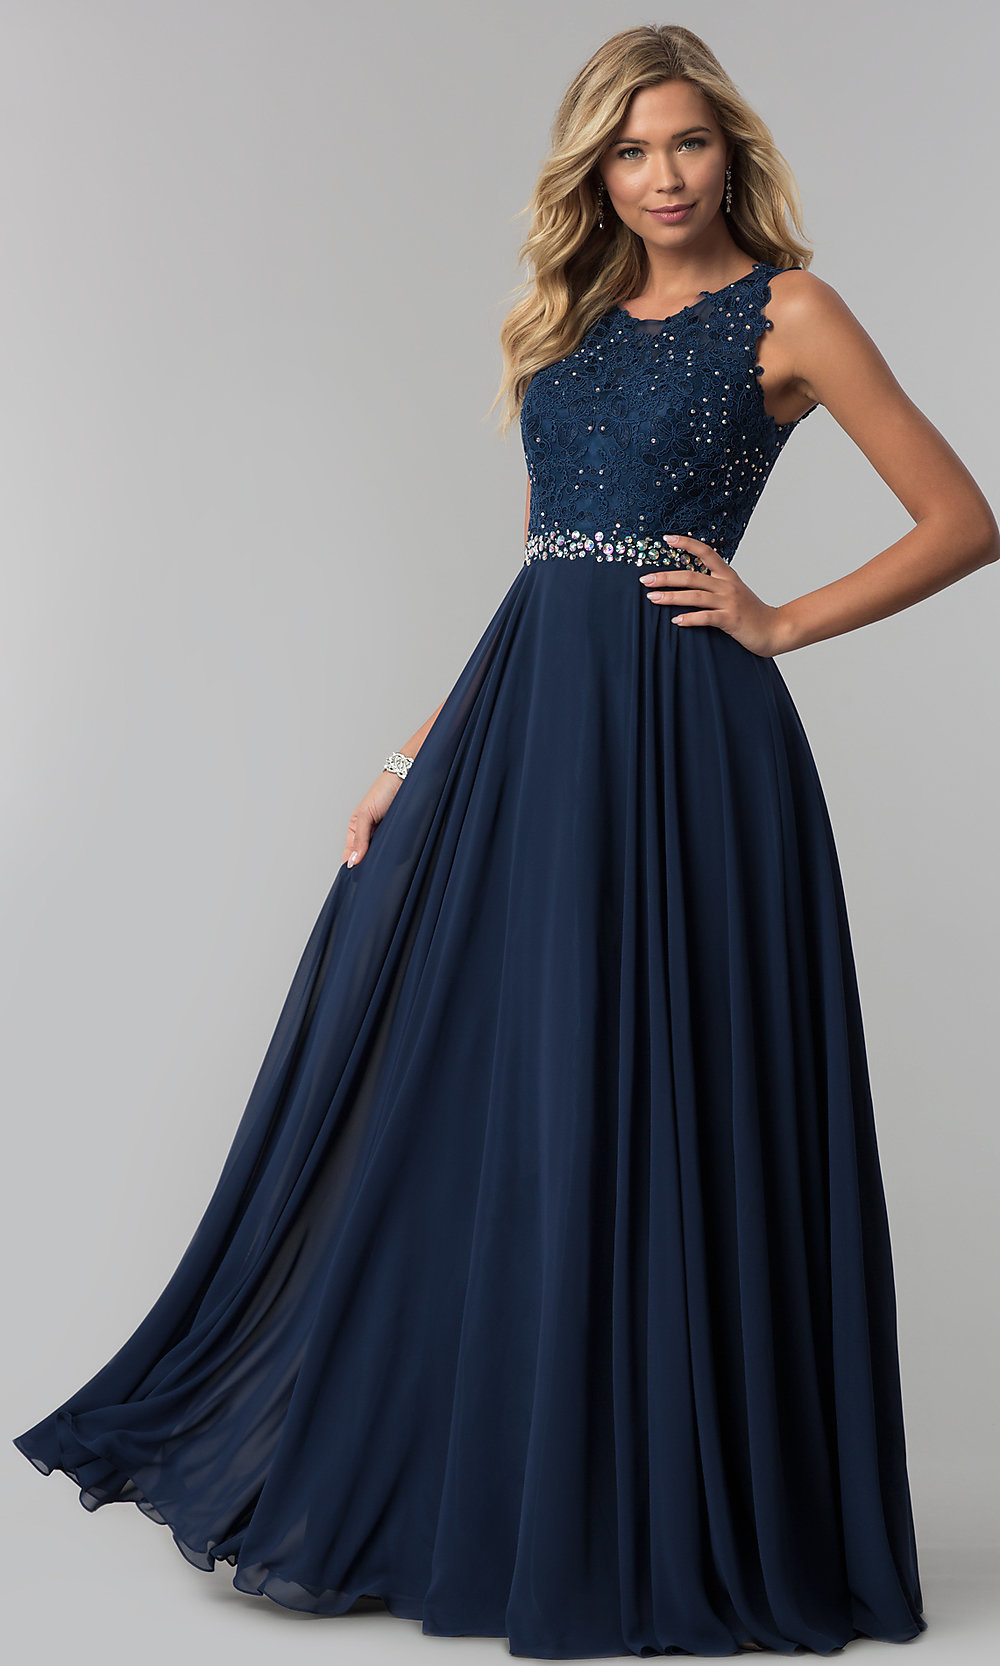 Chiffon Long Formal Dress with Beaded-Lace Applique 41601aba3